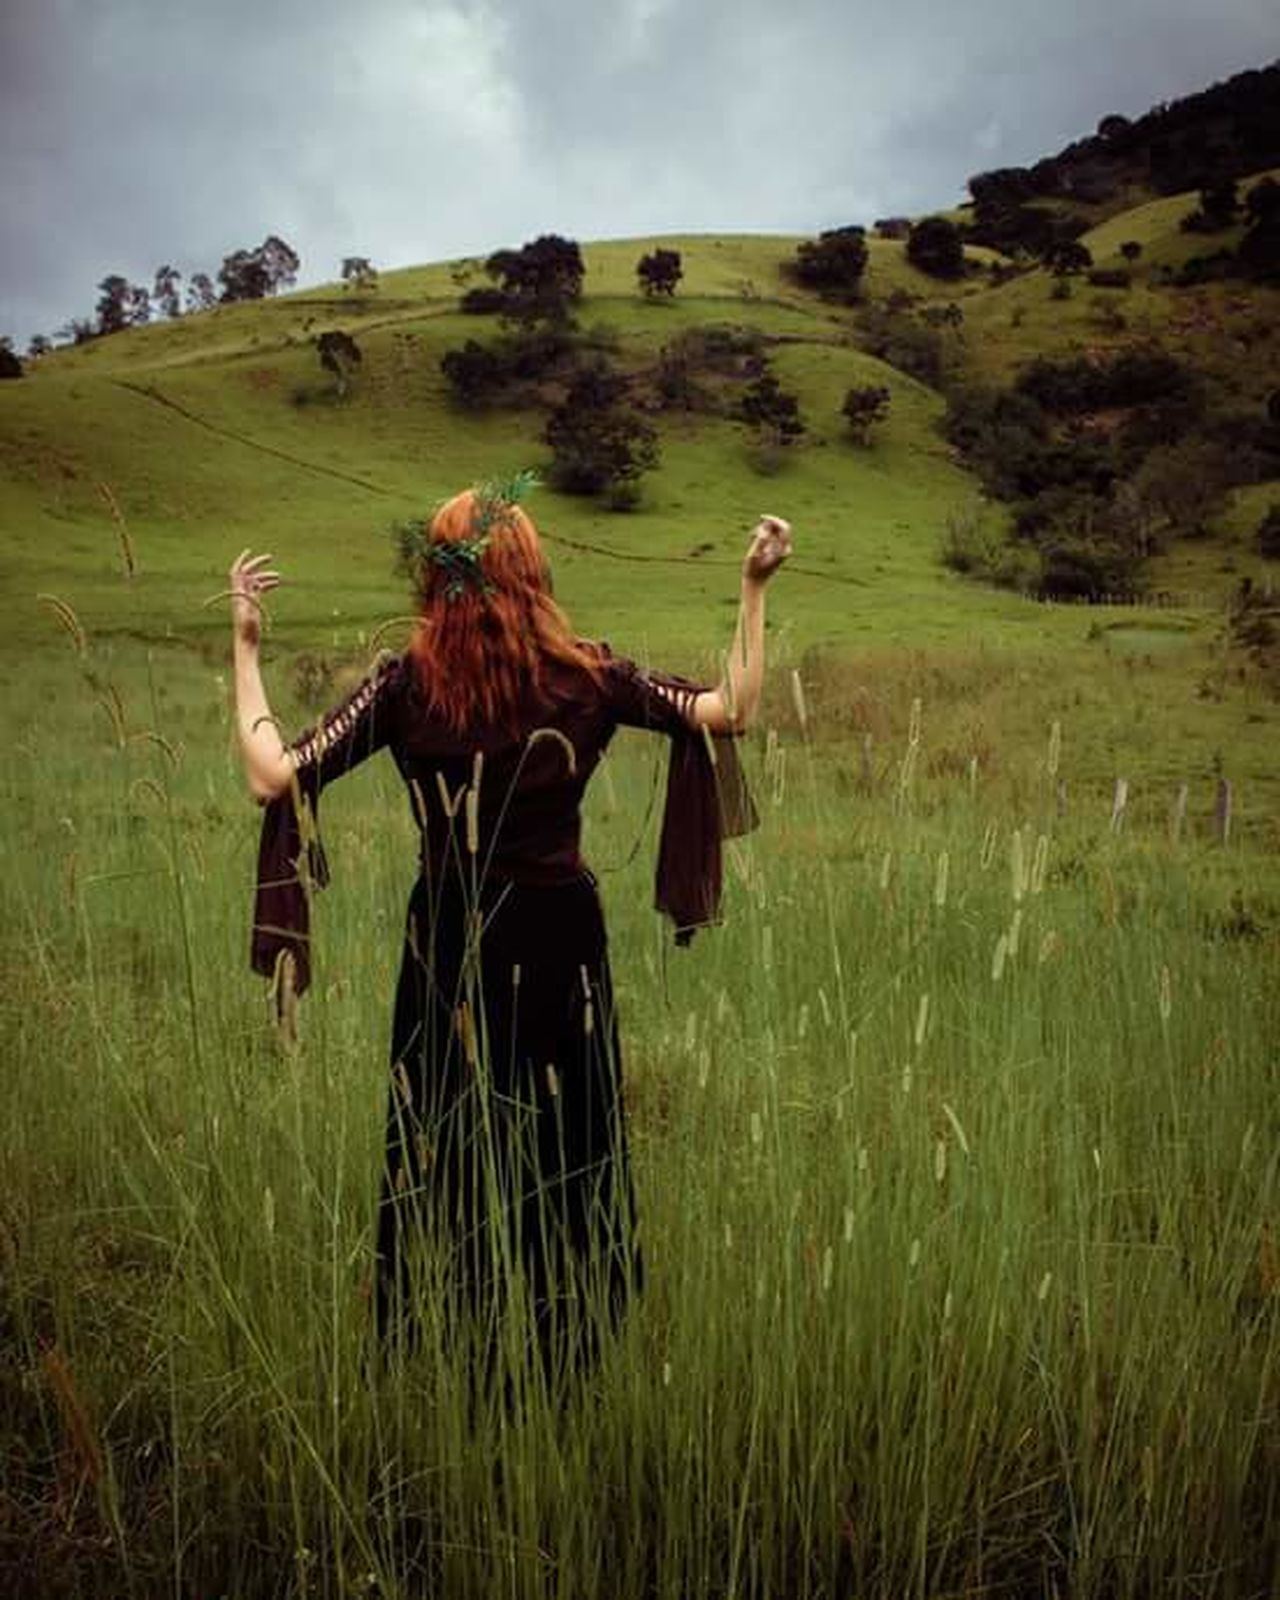 Redhair Redheads  Celtic Paganism Only Women Redheads  Gingerhair Nature Day Outdoors Goddess Beauty Folk Folklore Portrait Contemplation Young Women Field Of Dreams Redheadsdoitbest Beautiful Woman Ginger One Woman Only Dyed Hair One Young Woman Only People